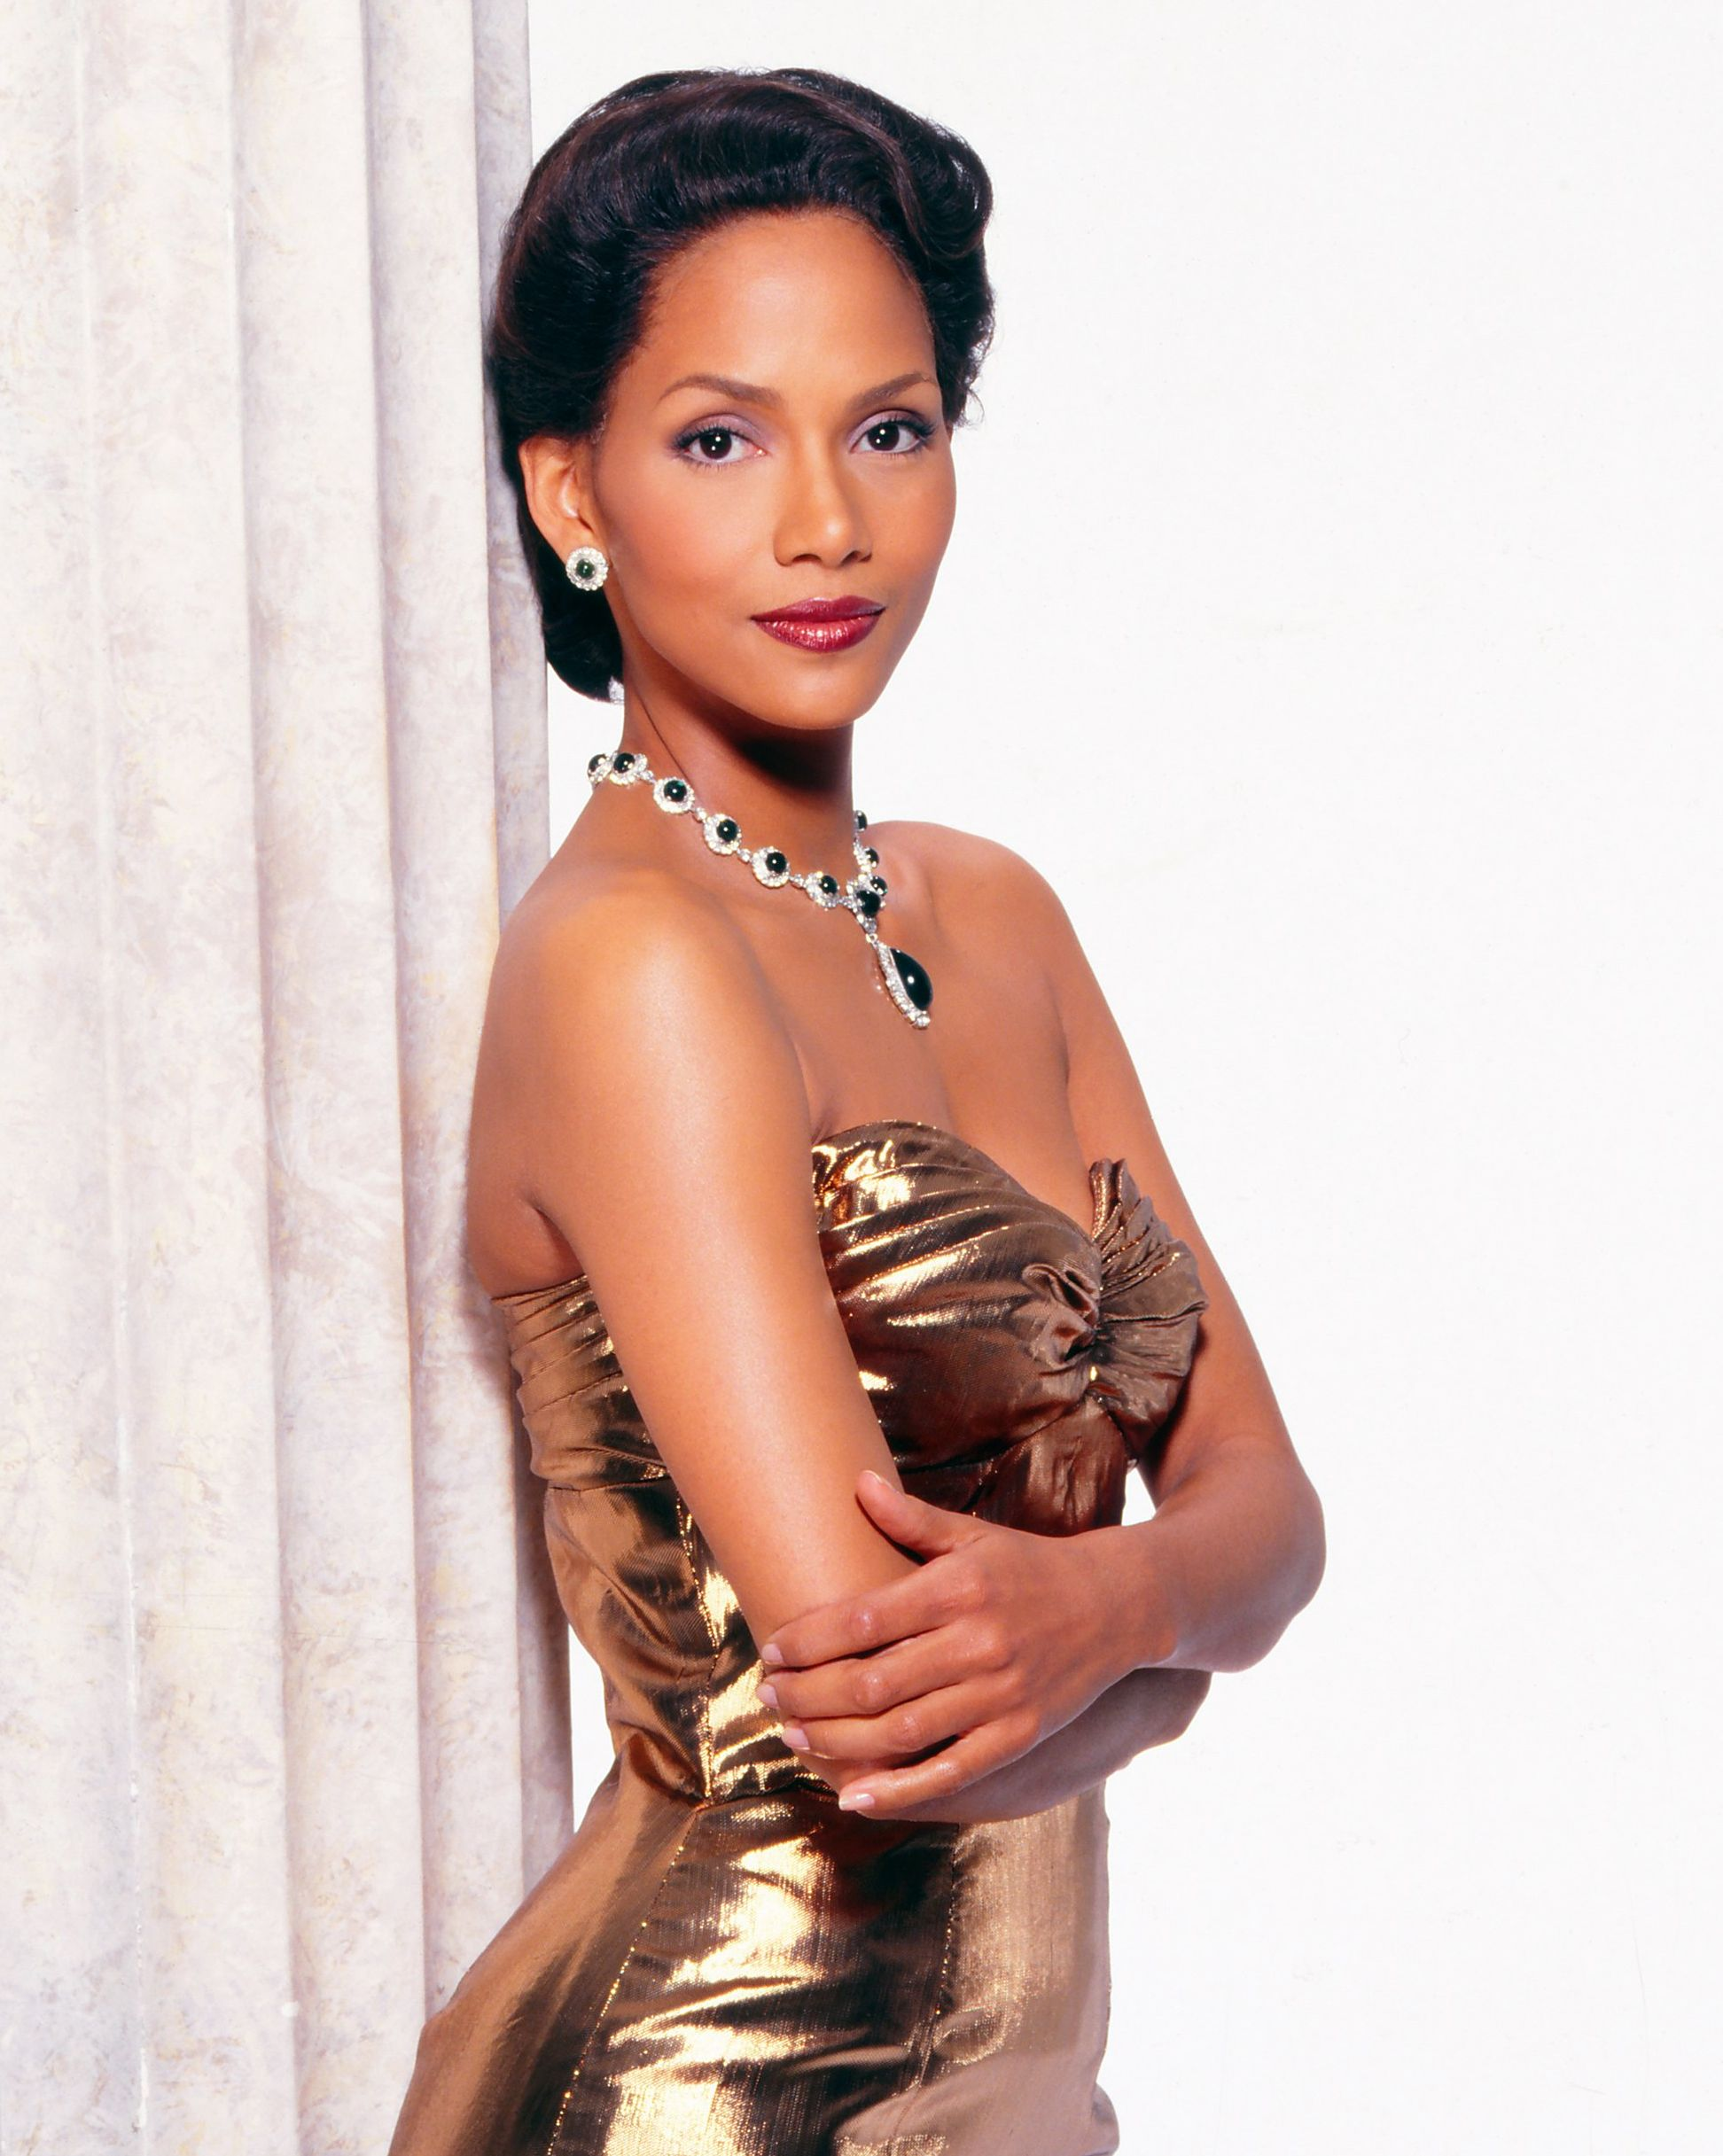 An Emmy-Winning Role Berry took on the role of Dorothy Dandridge, the first African-American woman to be nominated for a Best Actress Oscar, for a 1999 HBO TV movie. Introducing Dorothy Dandridge landed Halle herself an Emmy for Lead Actress.